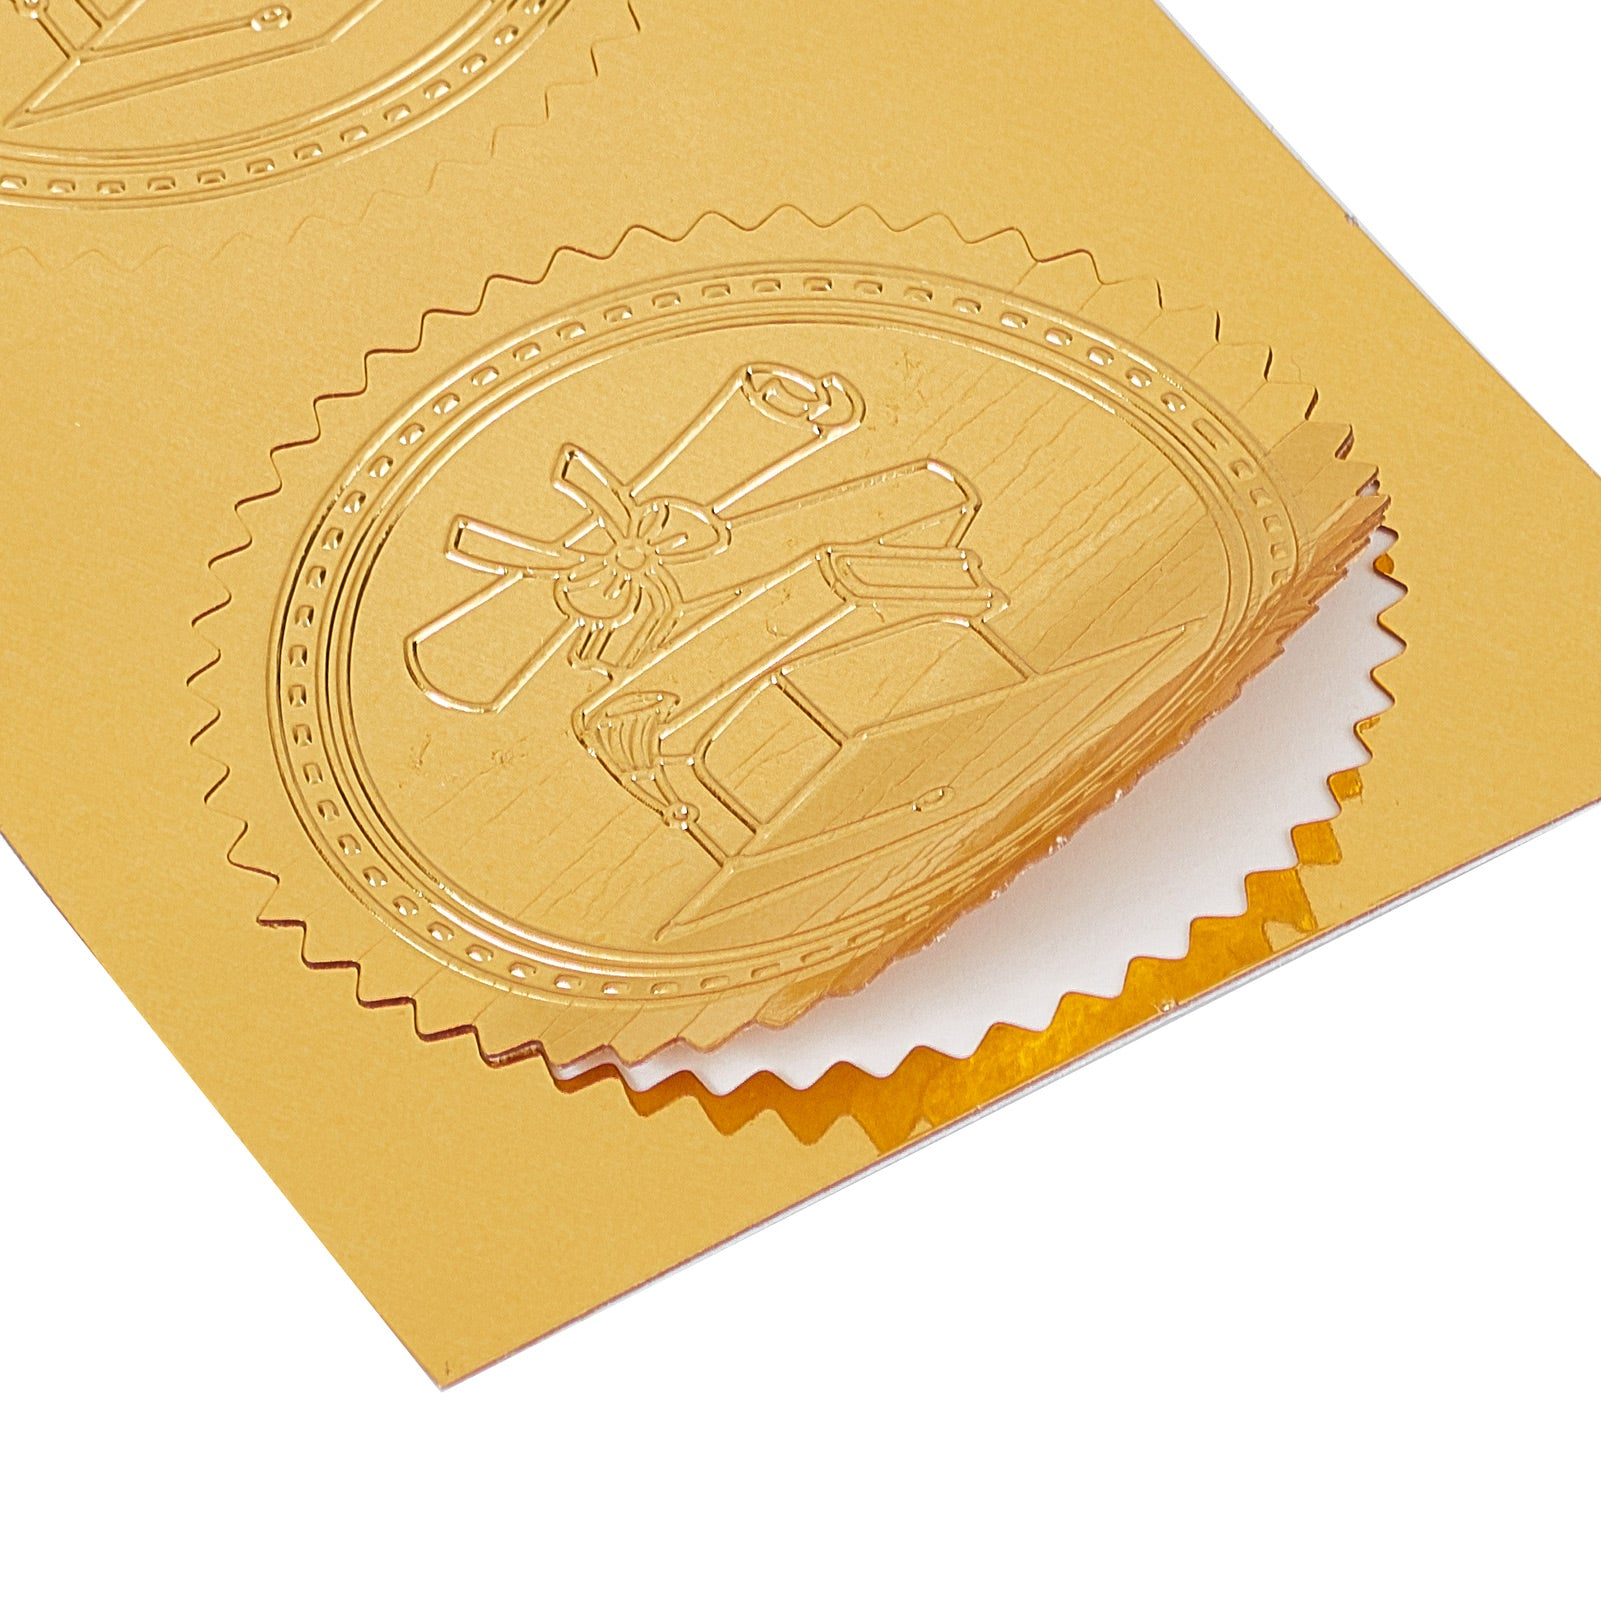 100pcs Embossed Gold Foil Certificate Seals Self Adhesive Stickers-7